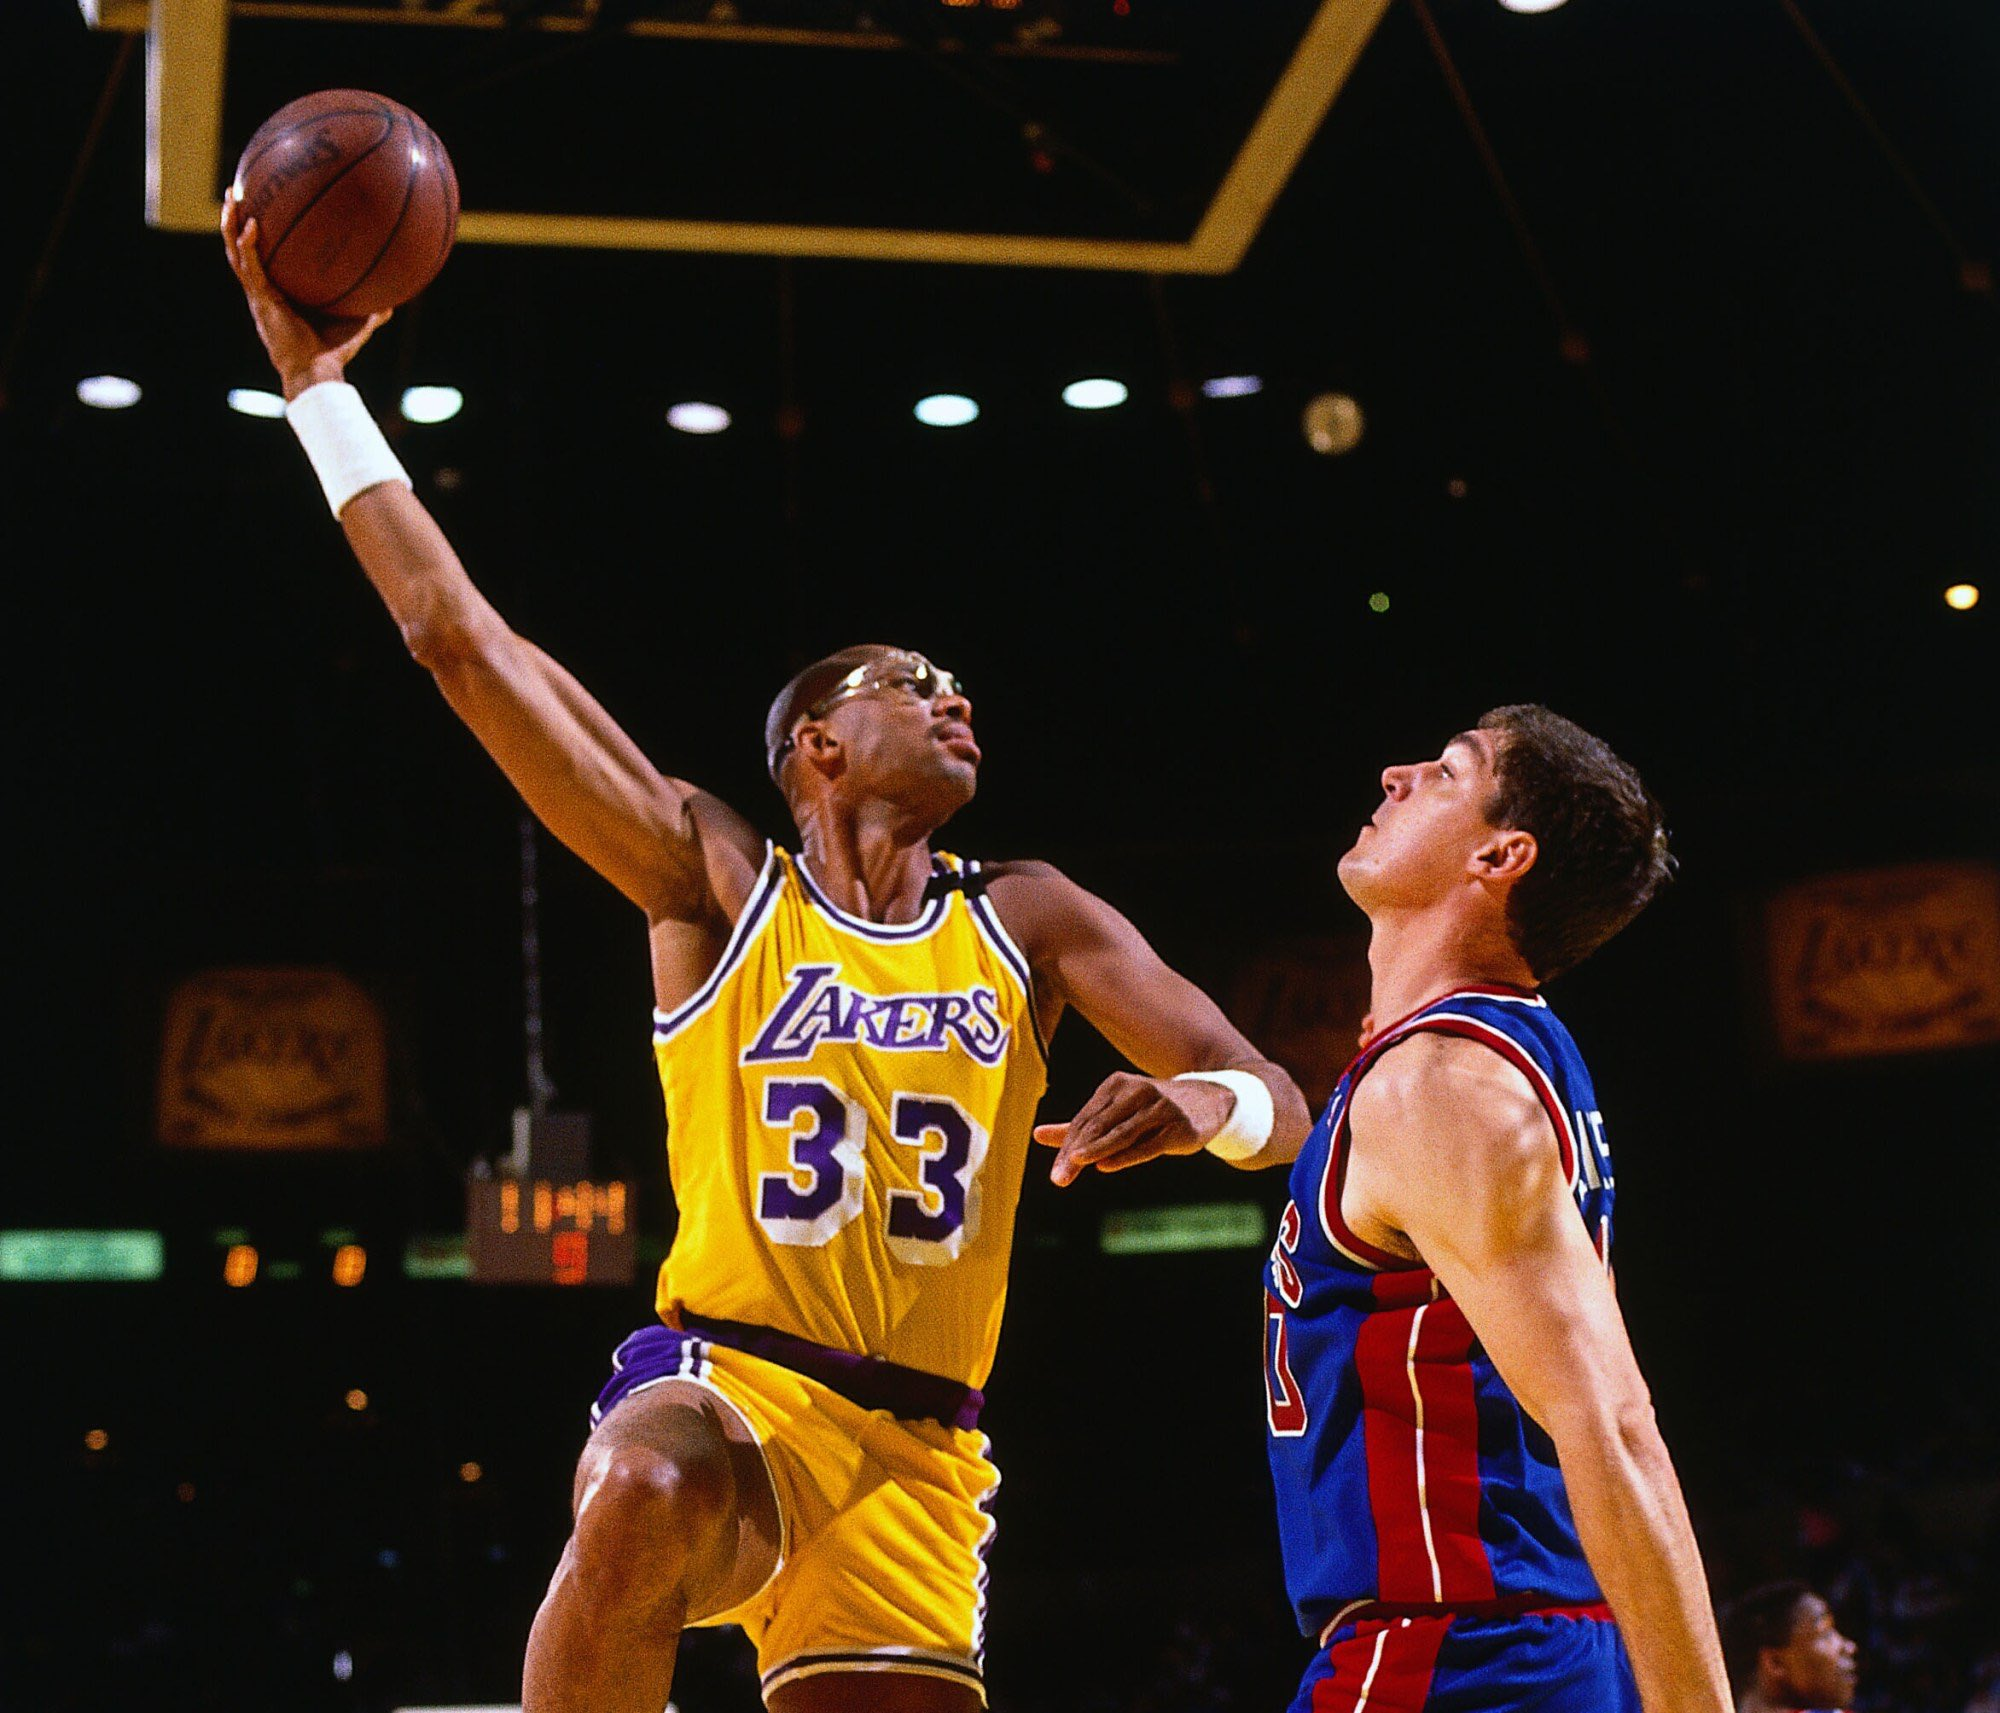 Happy 71st birthday to the legendary Kareem Abdul-Jabbar